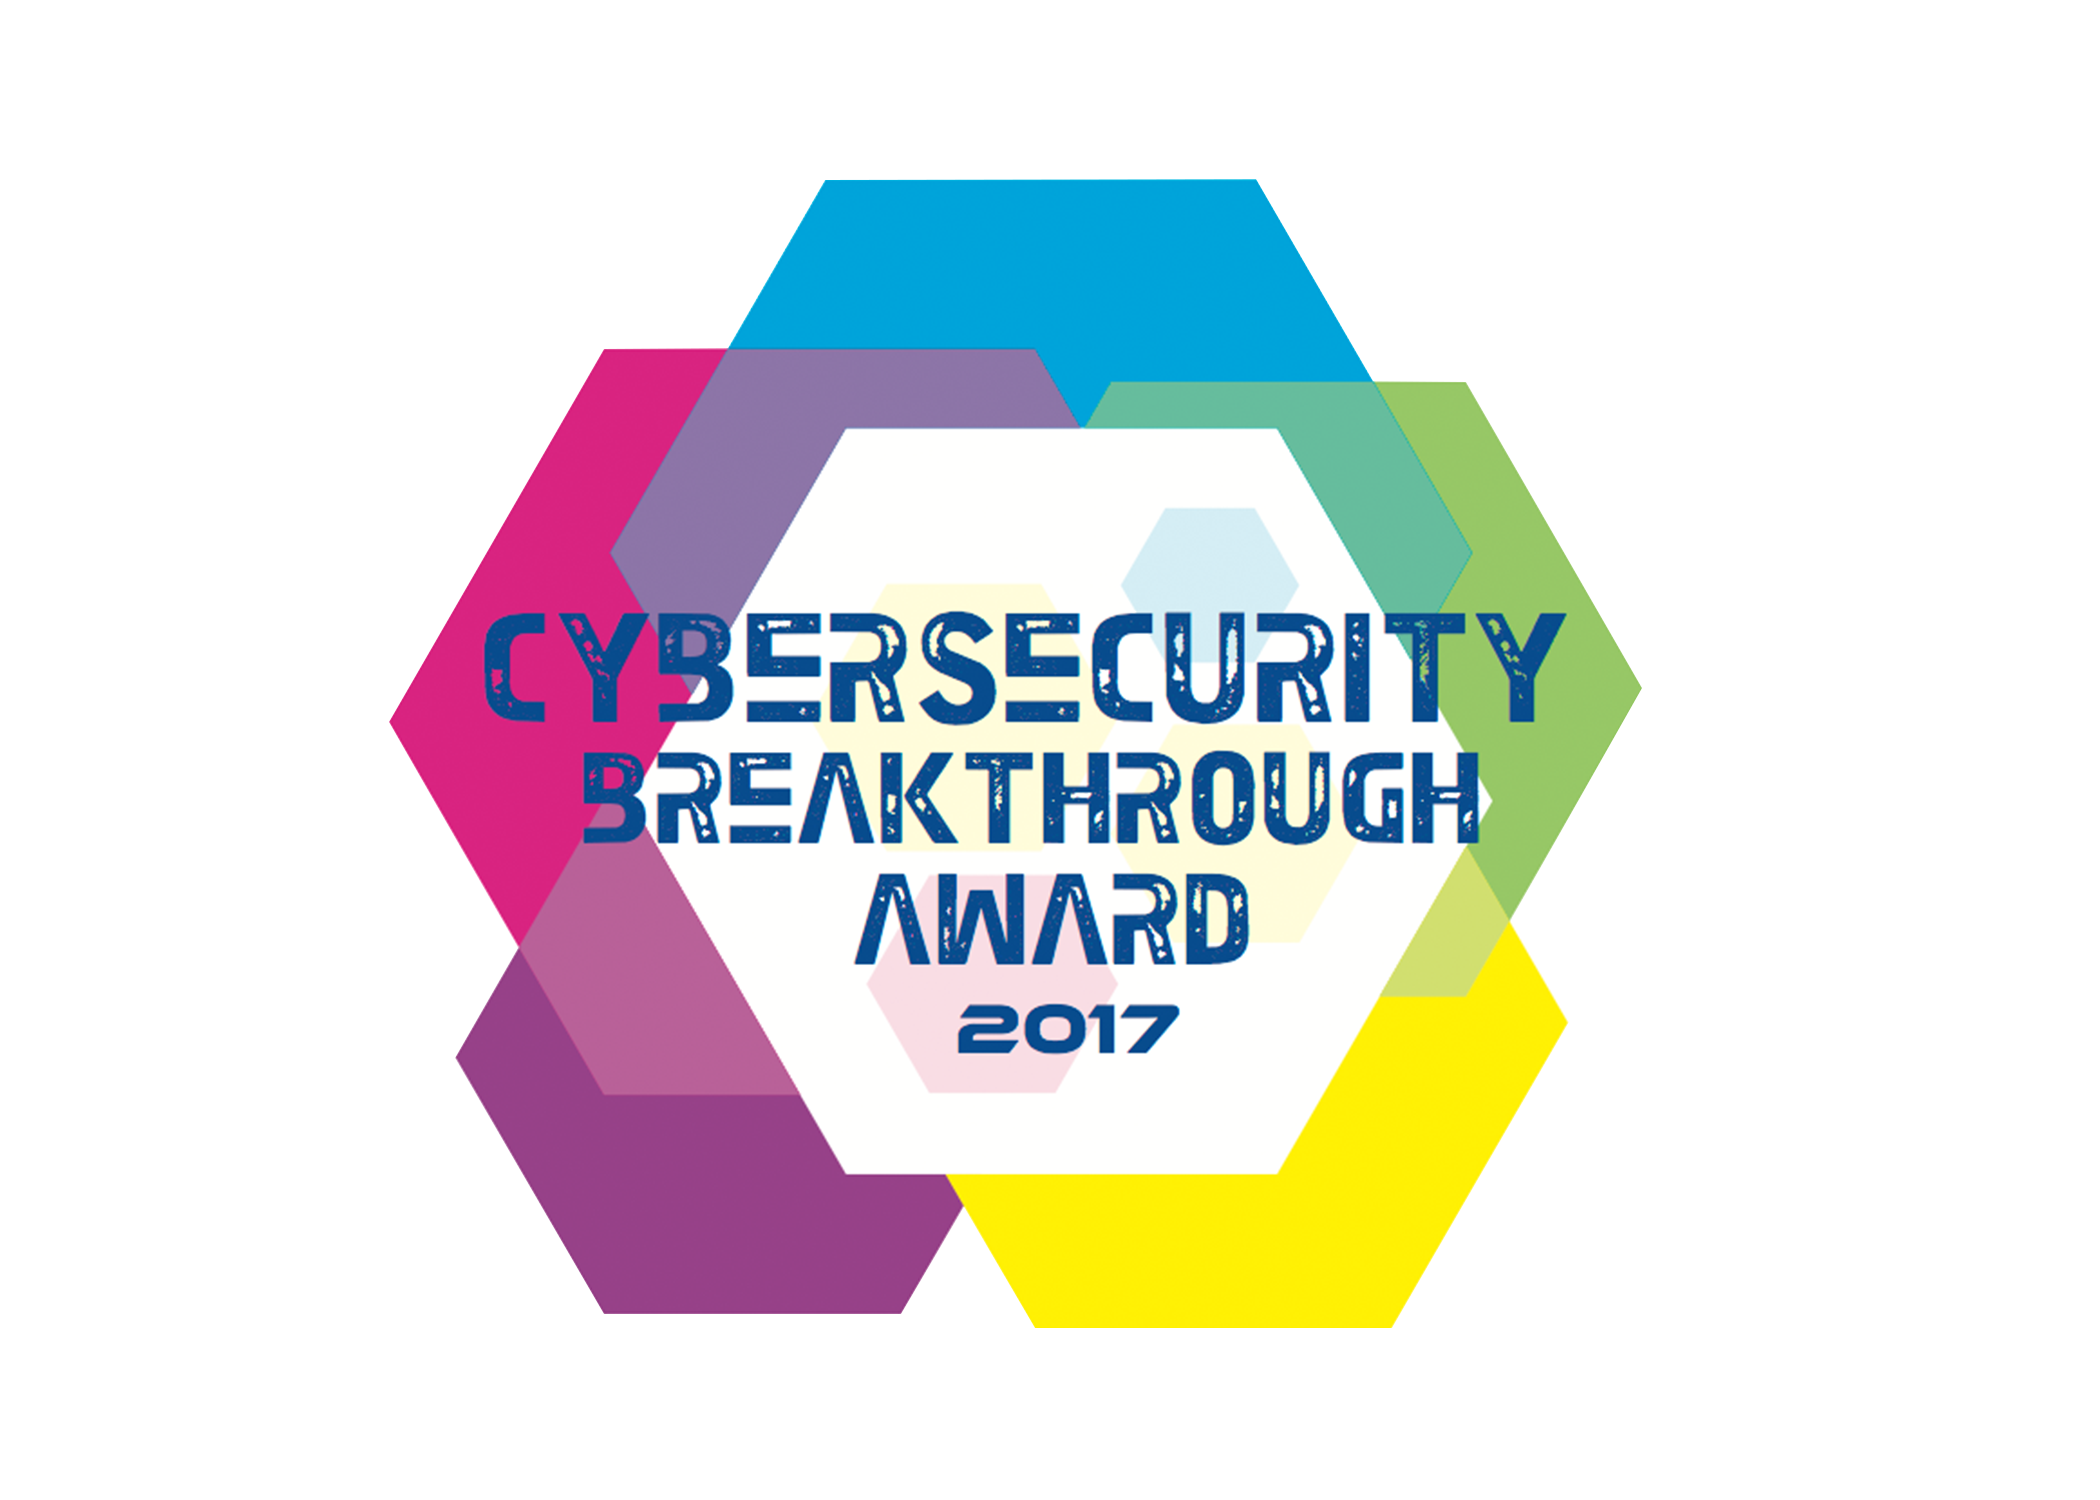 Cybersecurity Breakthrough Award: Overall Risk Management Solution Provider of the Year